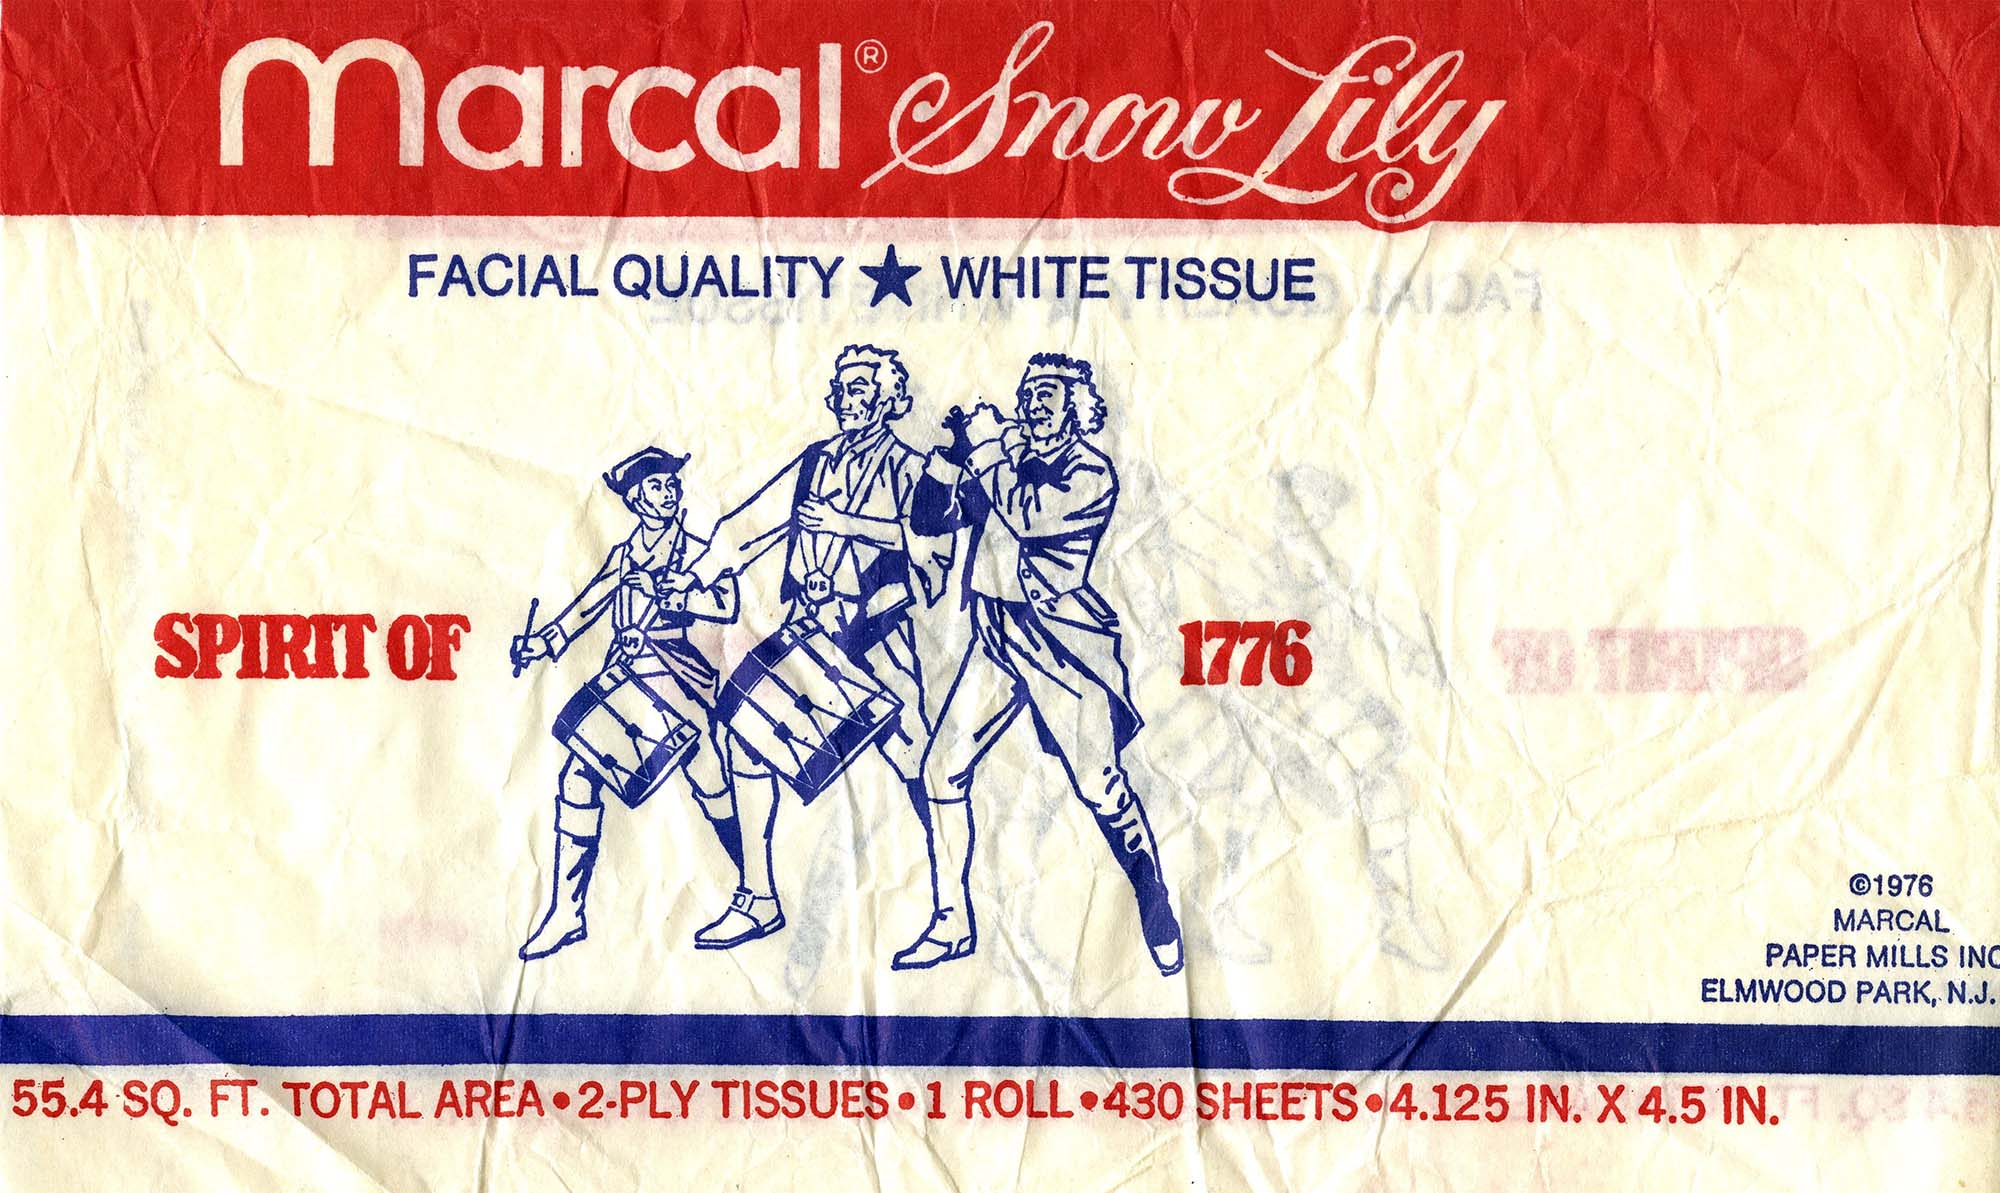 Bicentennial-Toilet-Paper-Wrapping-1976-min